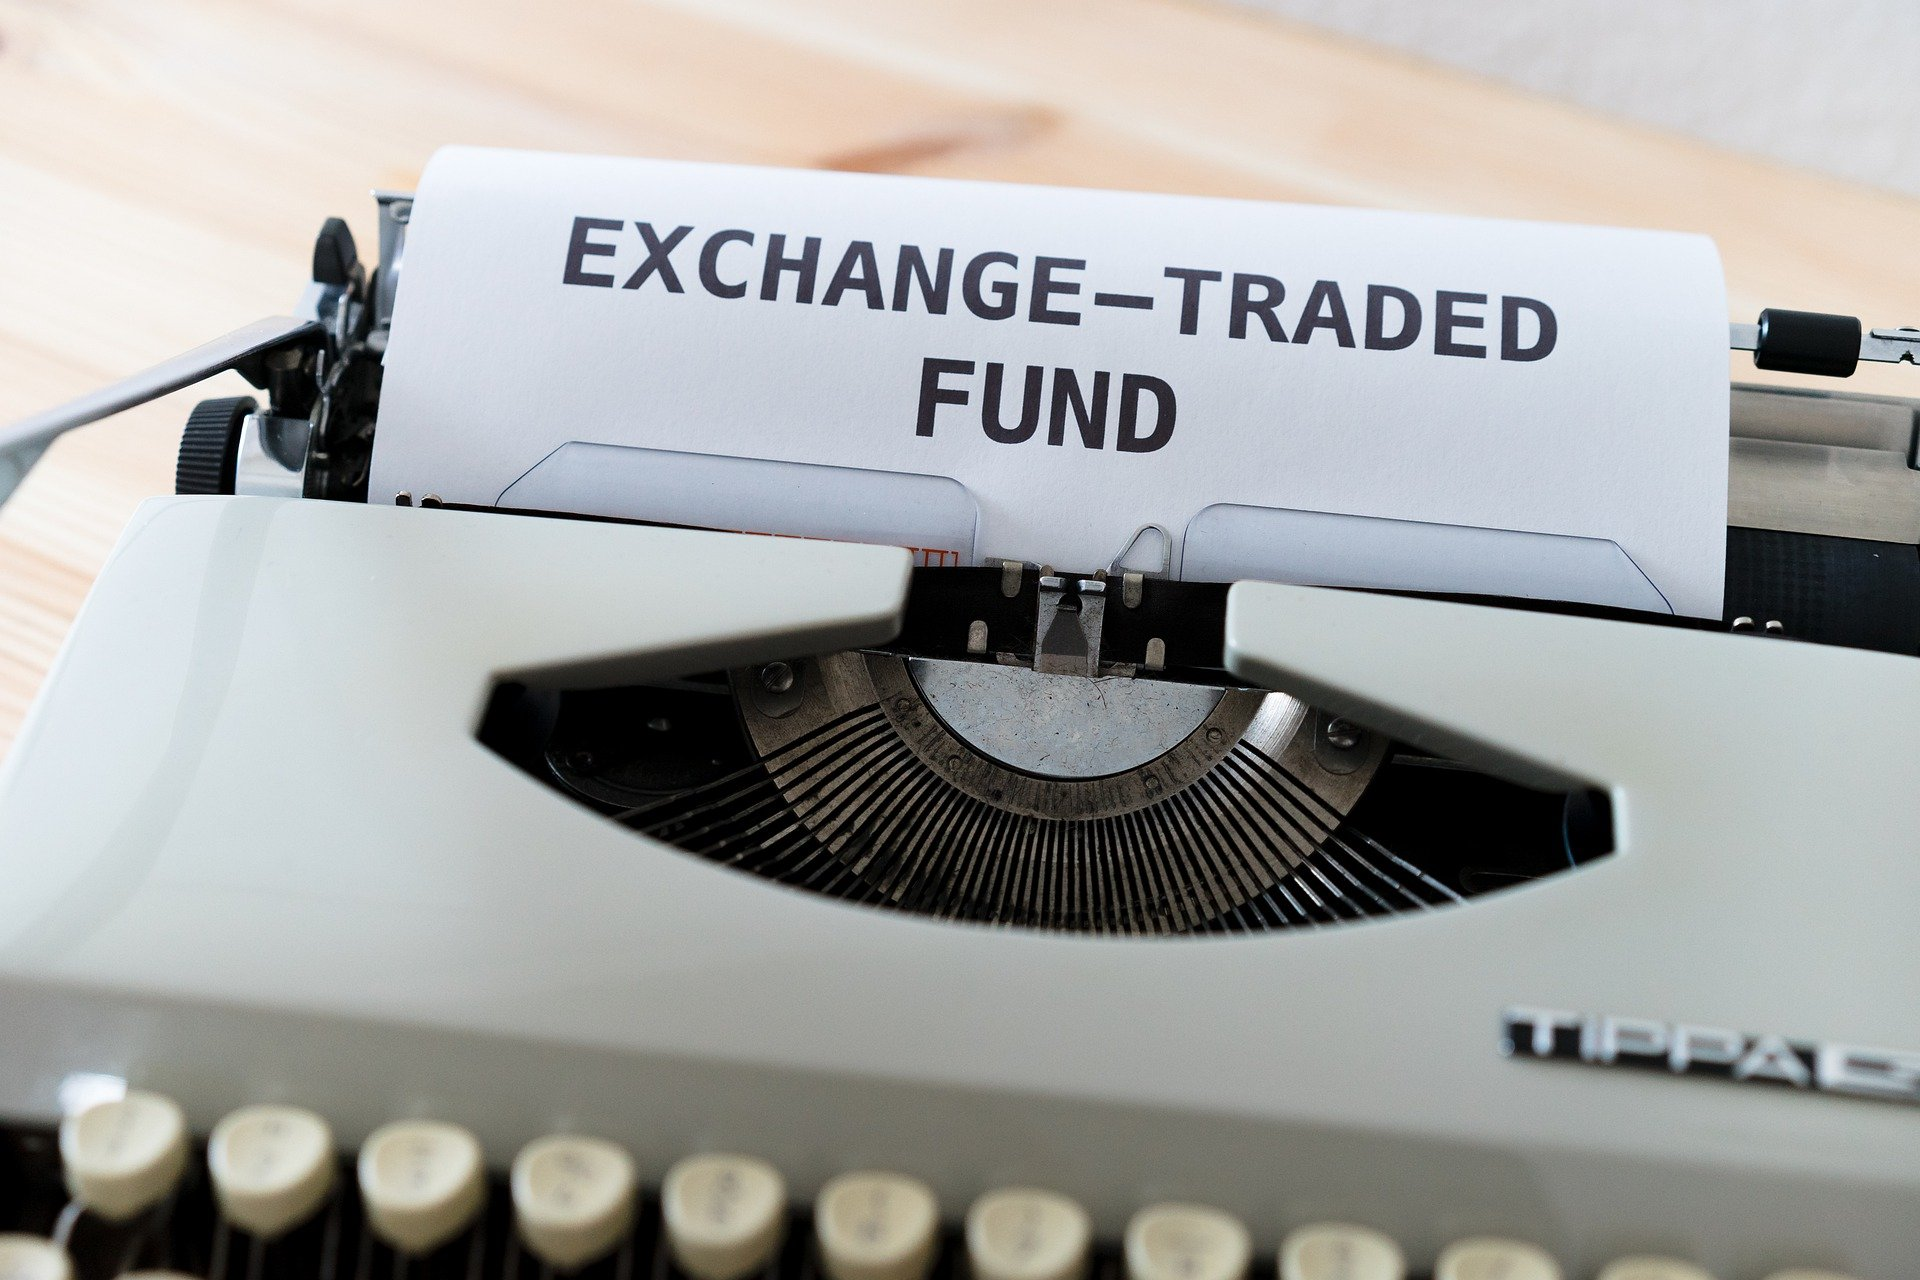 SEC May Approve Futures-based Bitcoin ETF, Bloomberg Analyst Says